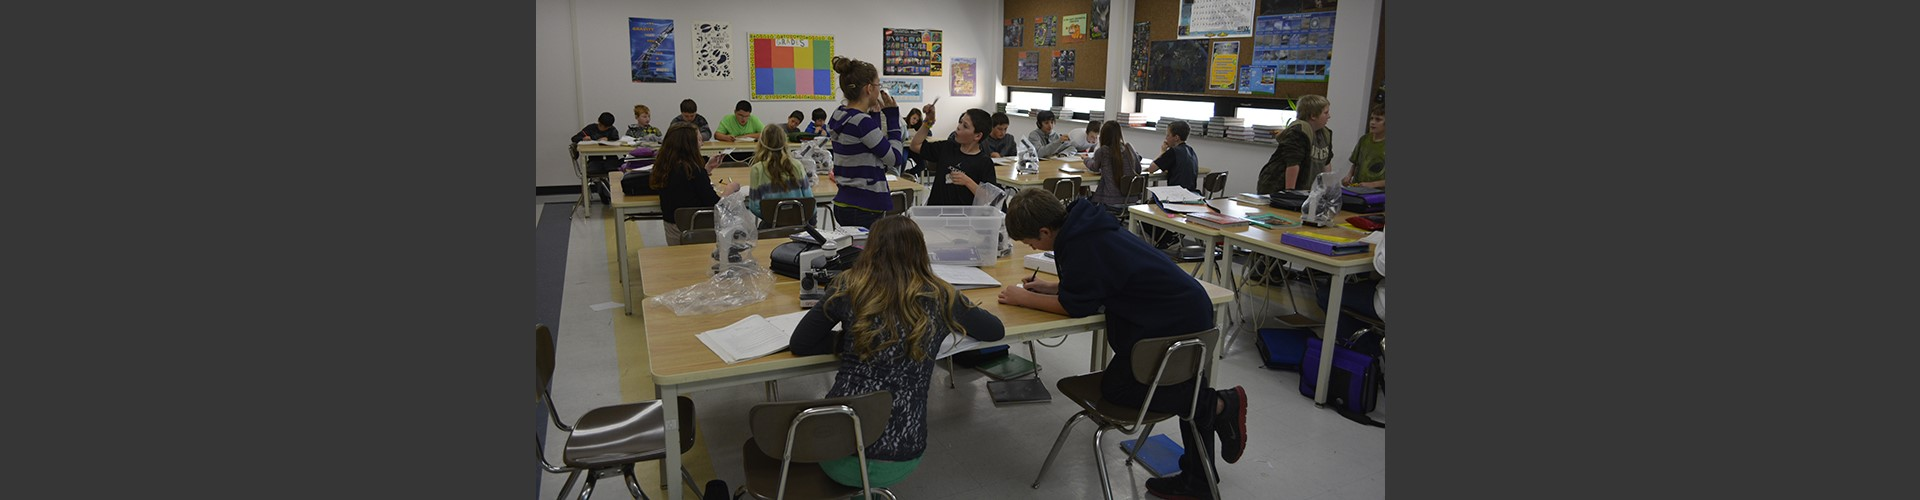 Students working in class at Alameda Middle School